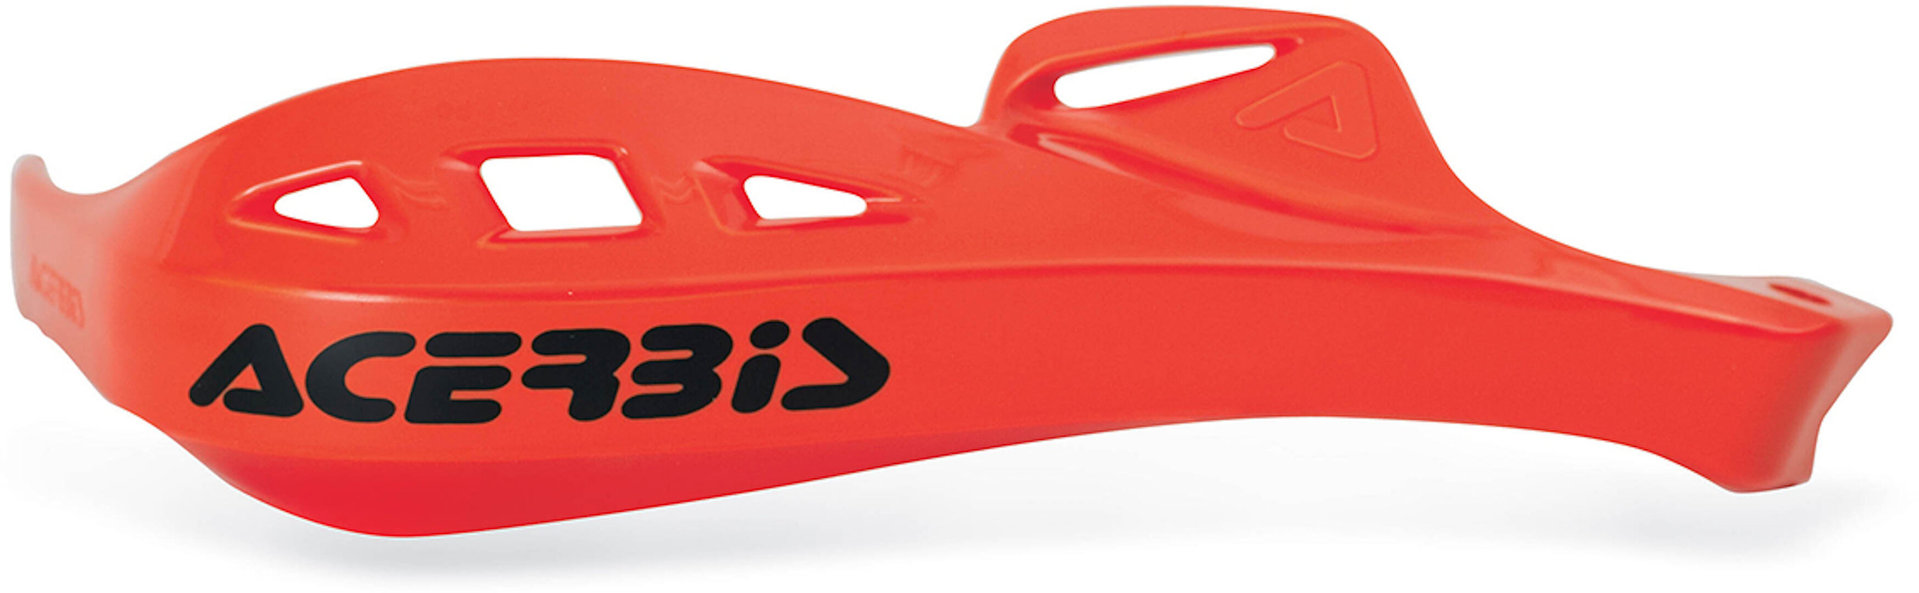 Acerbis Rally Profile Hand Guard, orange, orange, Size One Size from Acerbis